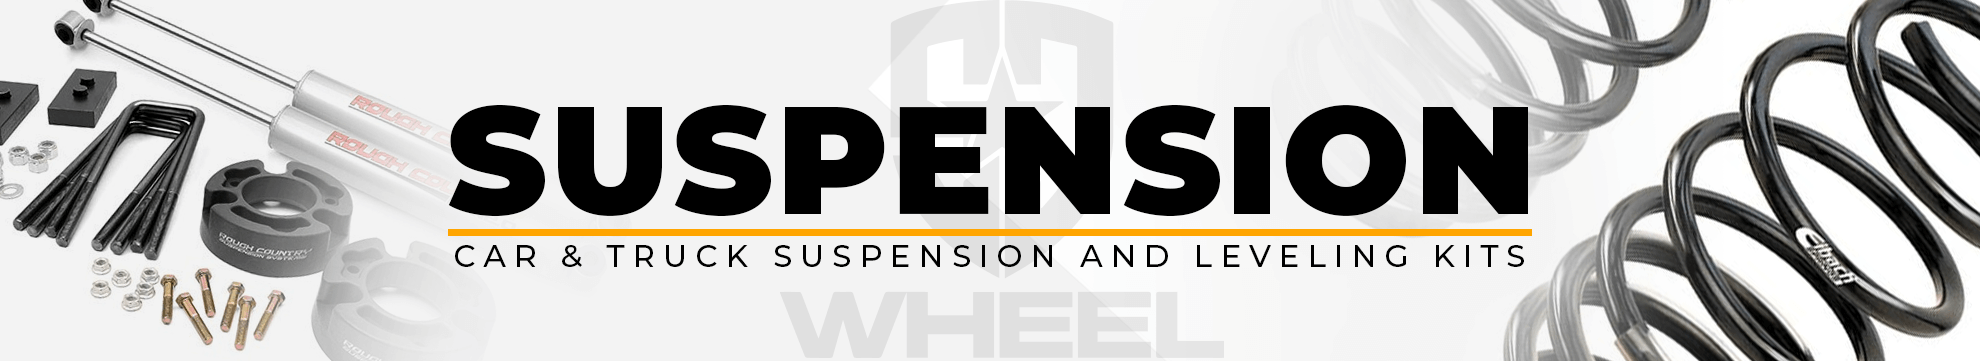 suspension, car & truck suspension and leveling kits